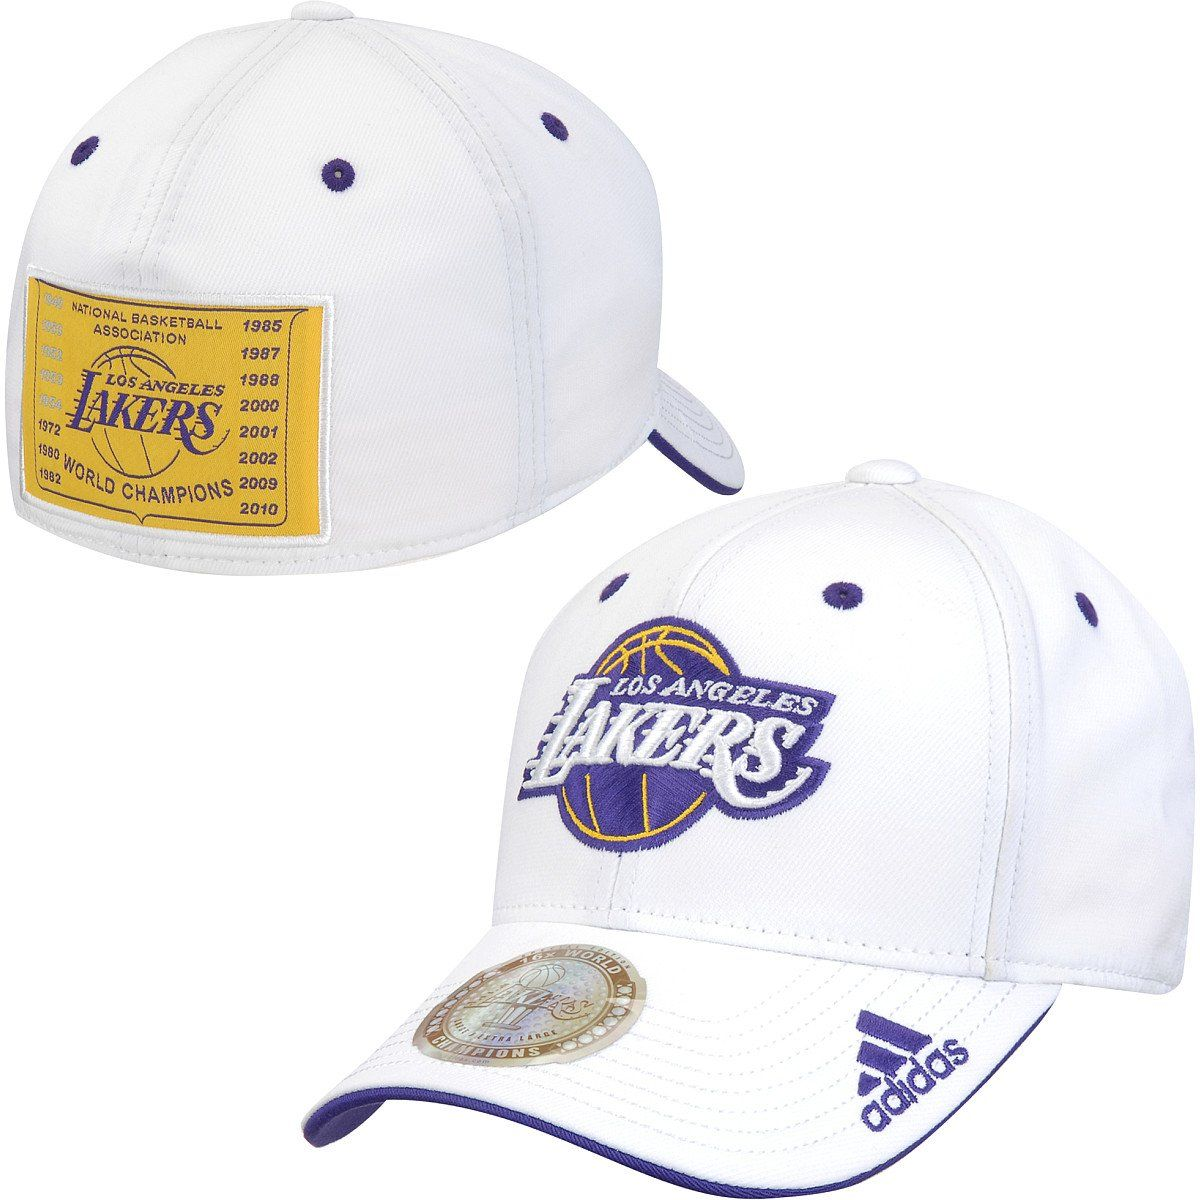 6f876d163e07ca adidas NBA Los Angeles Lakers White 16X Champions Fitted Hat Cap Adult,  $29.99